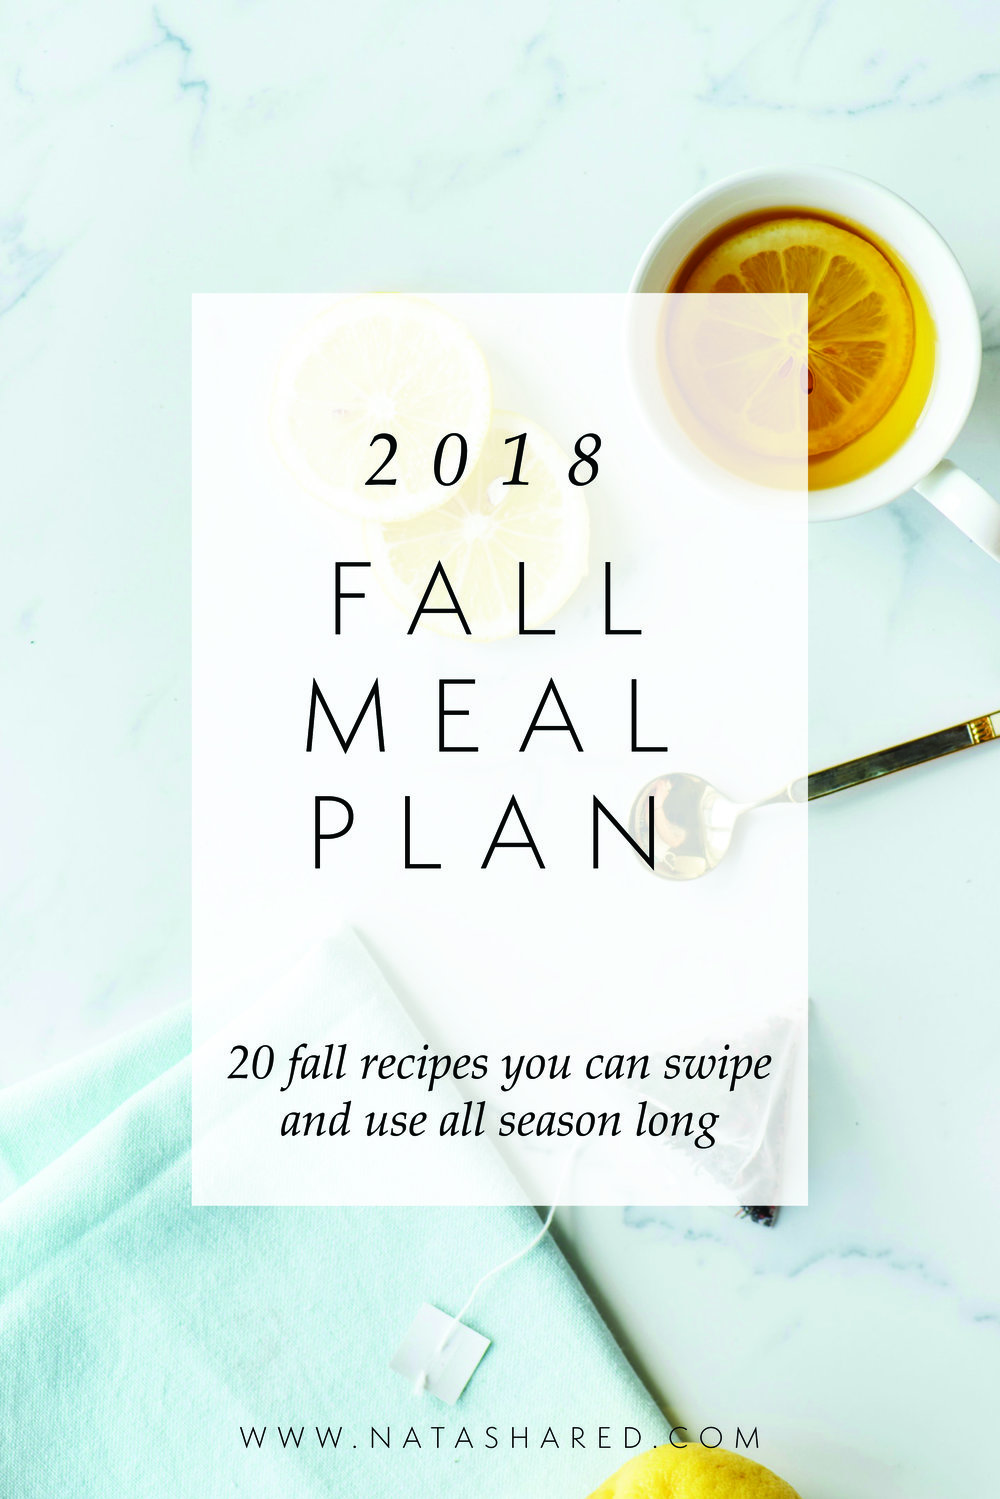 2018 Fall Meal Plan | Natasha Red | Seasonal Meal Planner | Fall Recipes | 20 Fall Recipes to Use all Season